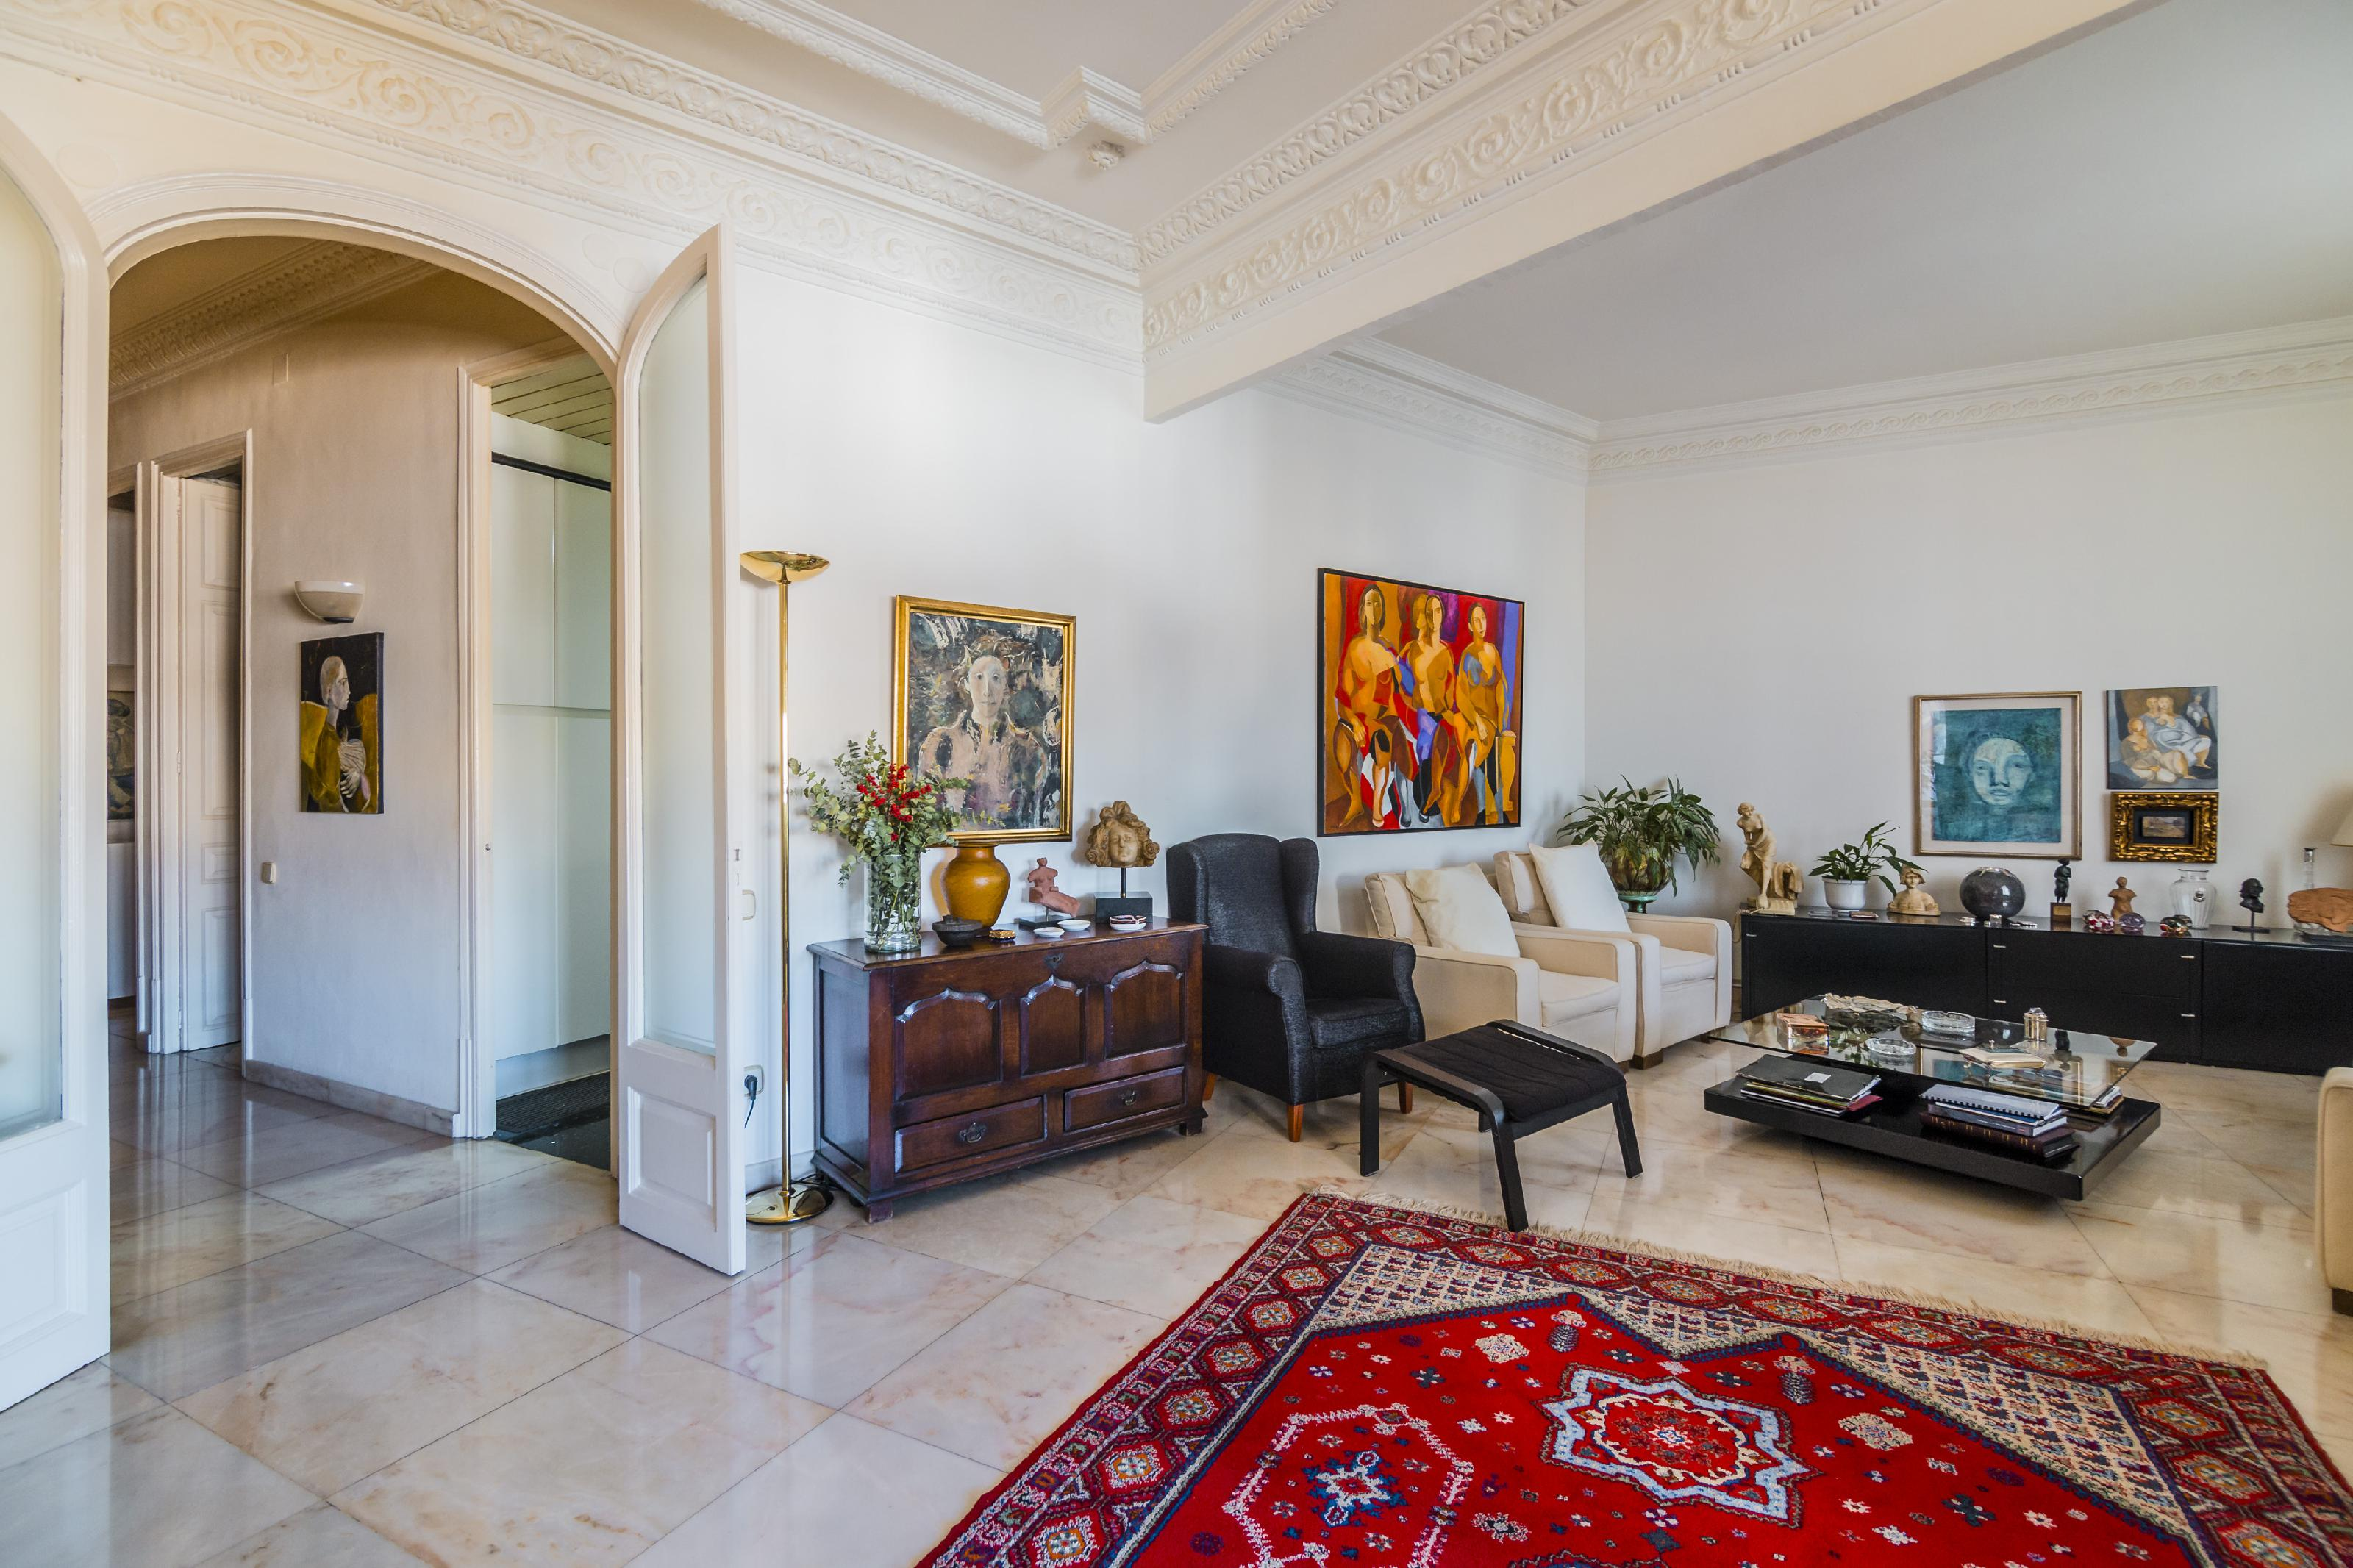 218503 Penthouse for sale in Sarrià-Sant Gervasi, Sant Gervasi-Galvany 19